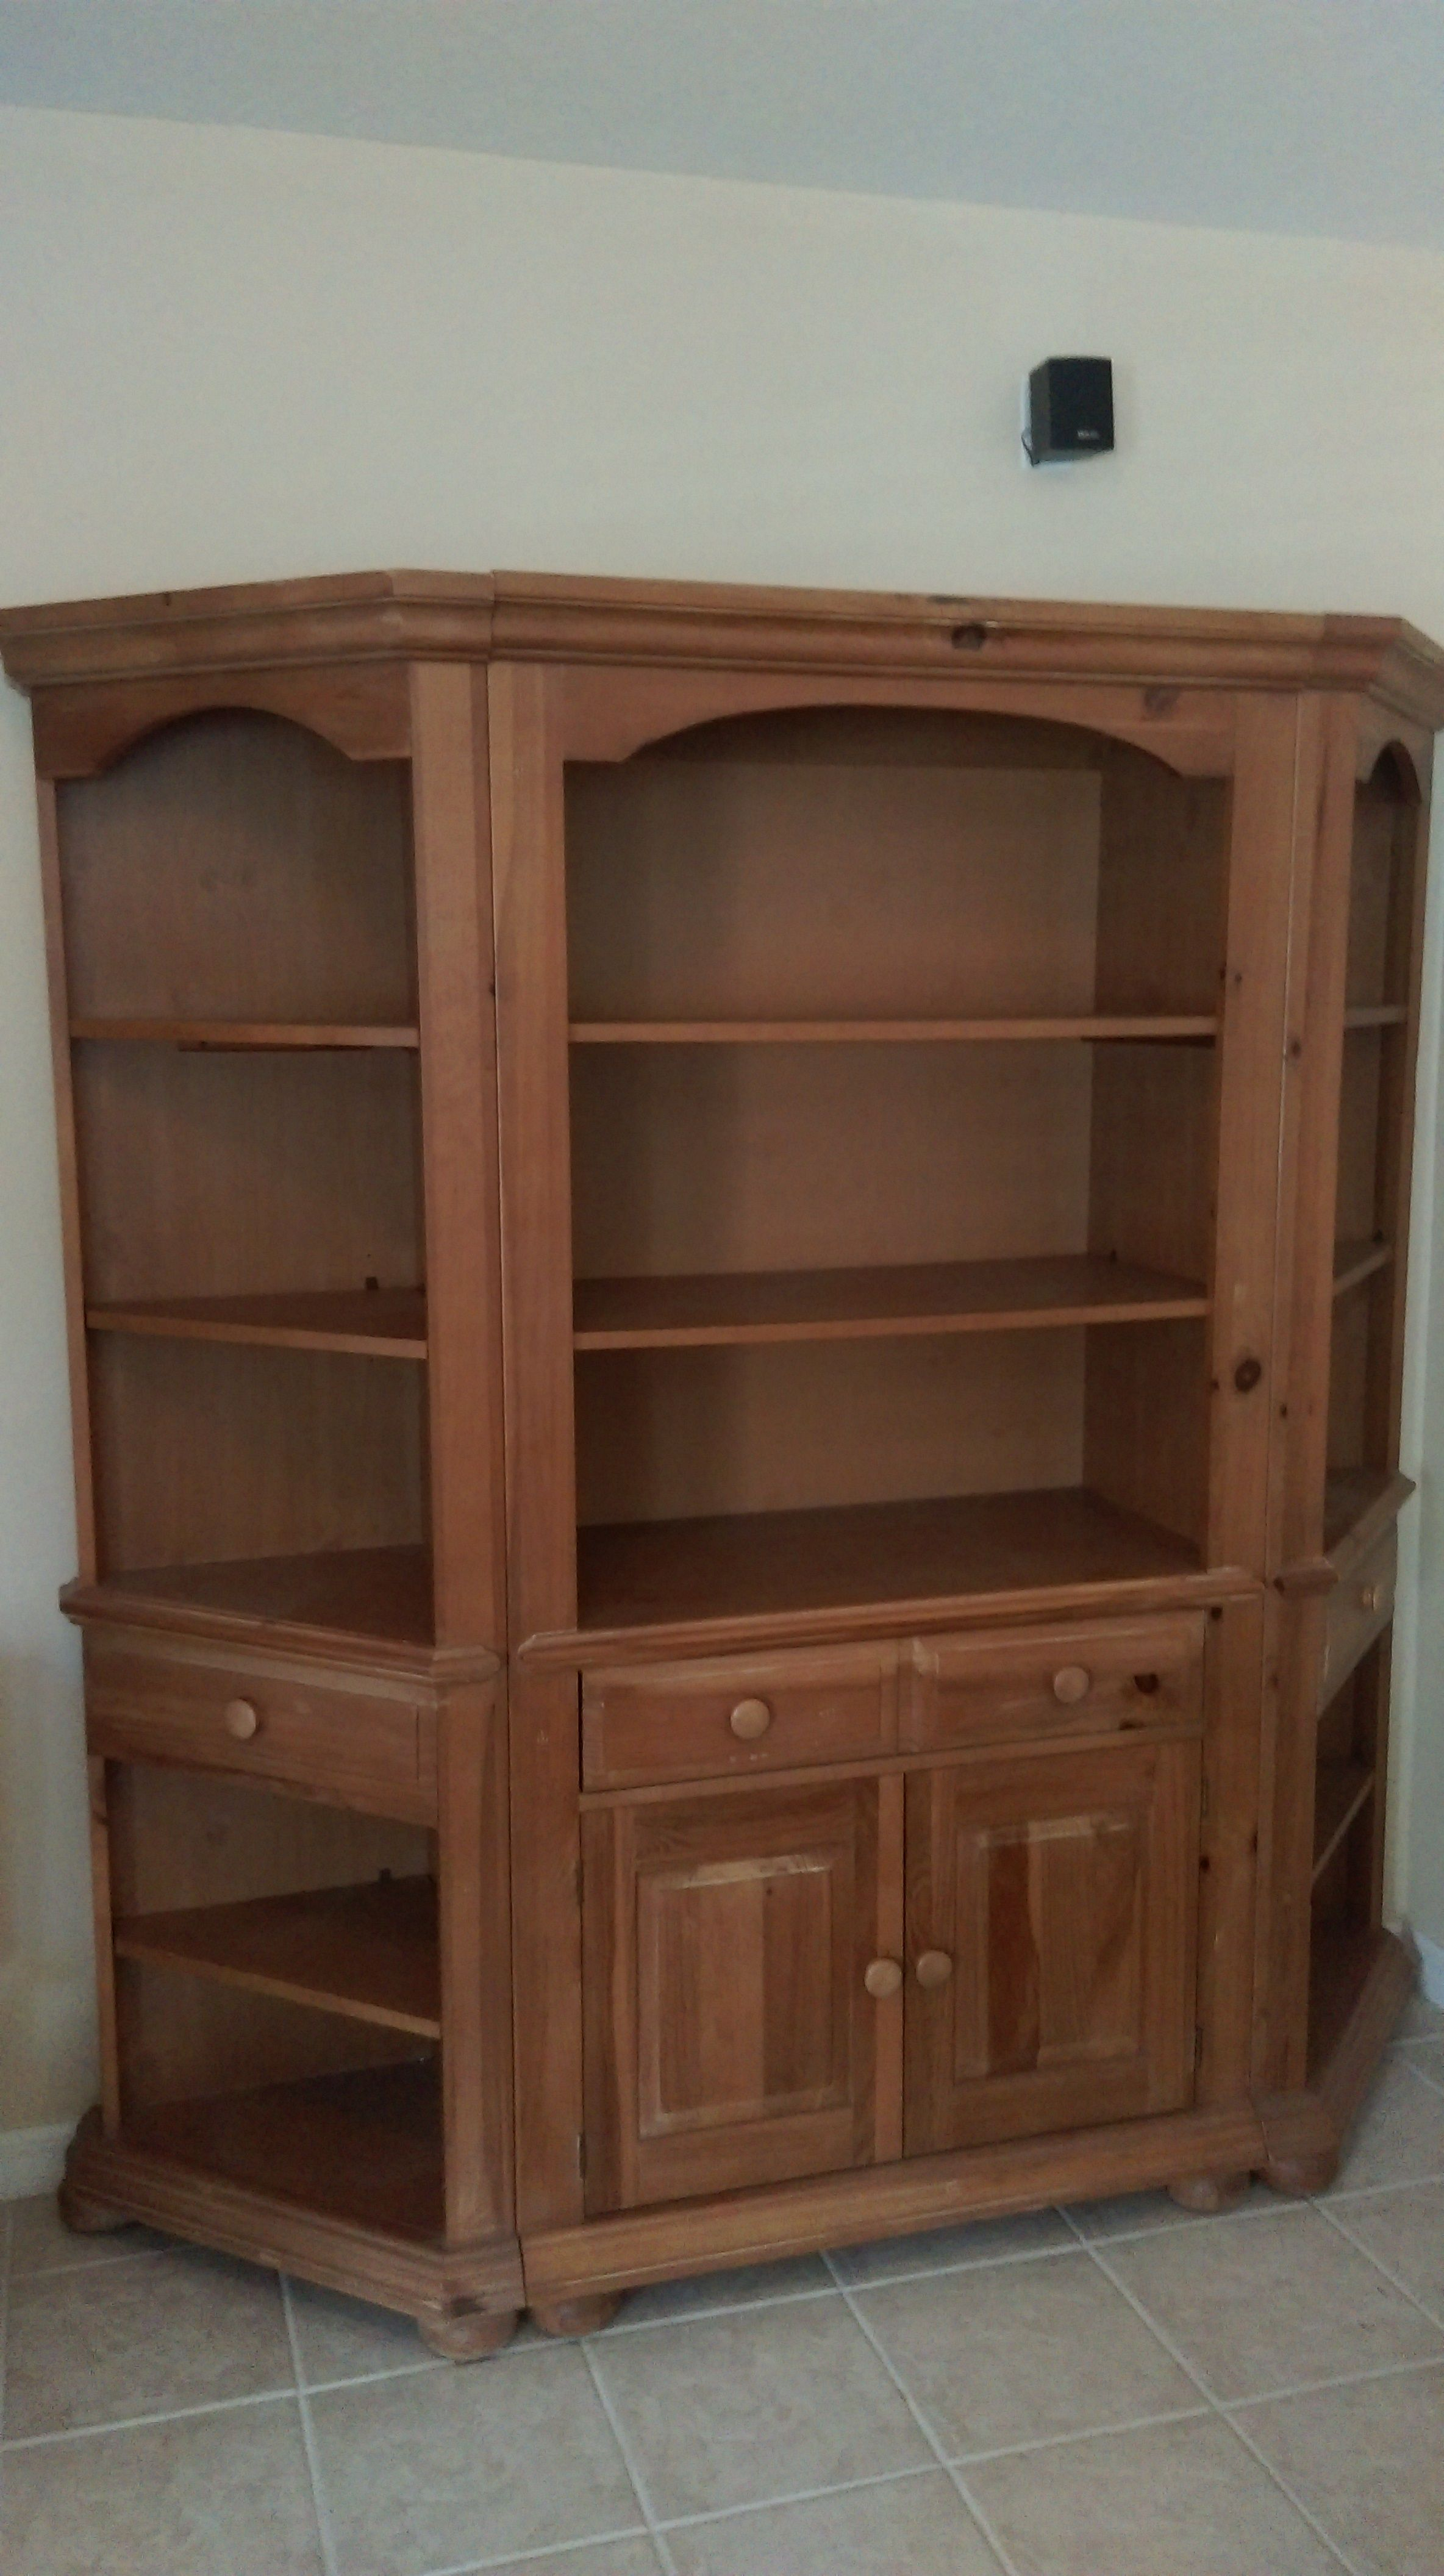 Broyhill Fontana Shelving Unit The Side Shelves Detach And Can Be Used In Corners American Made